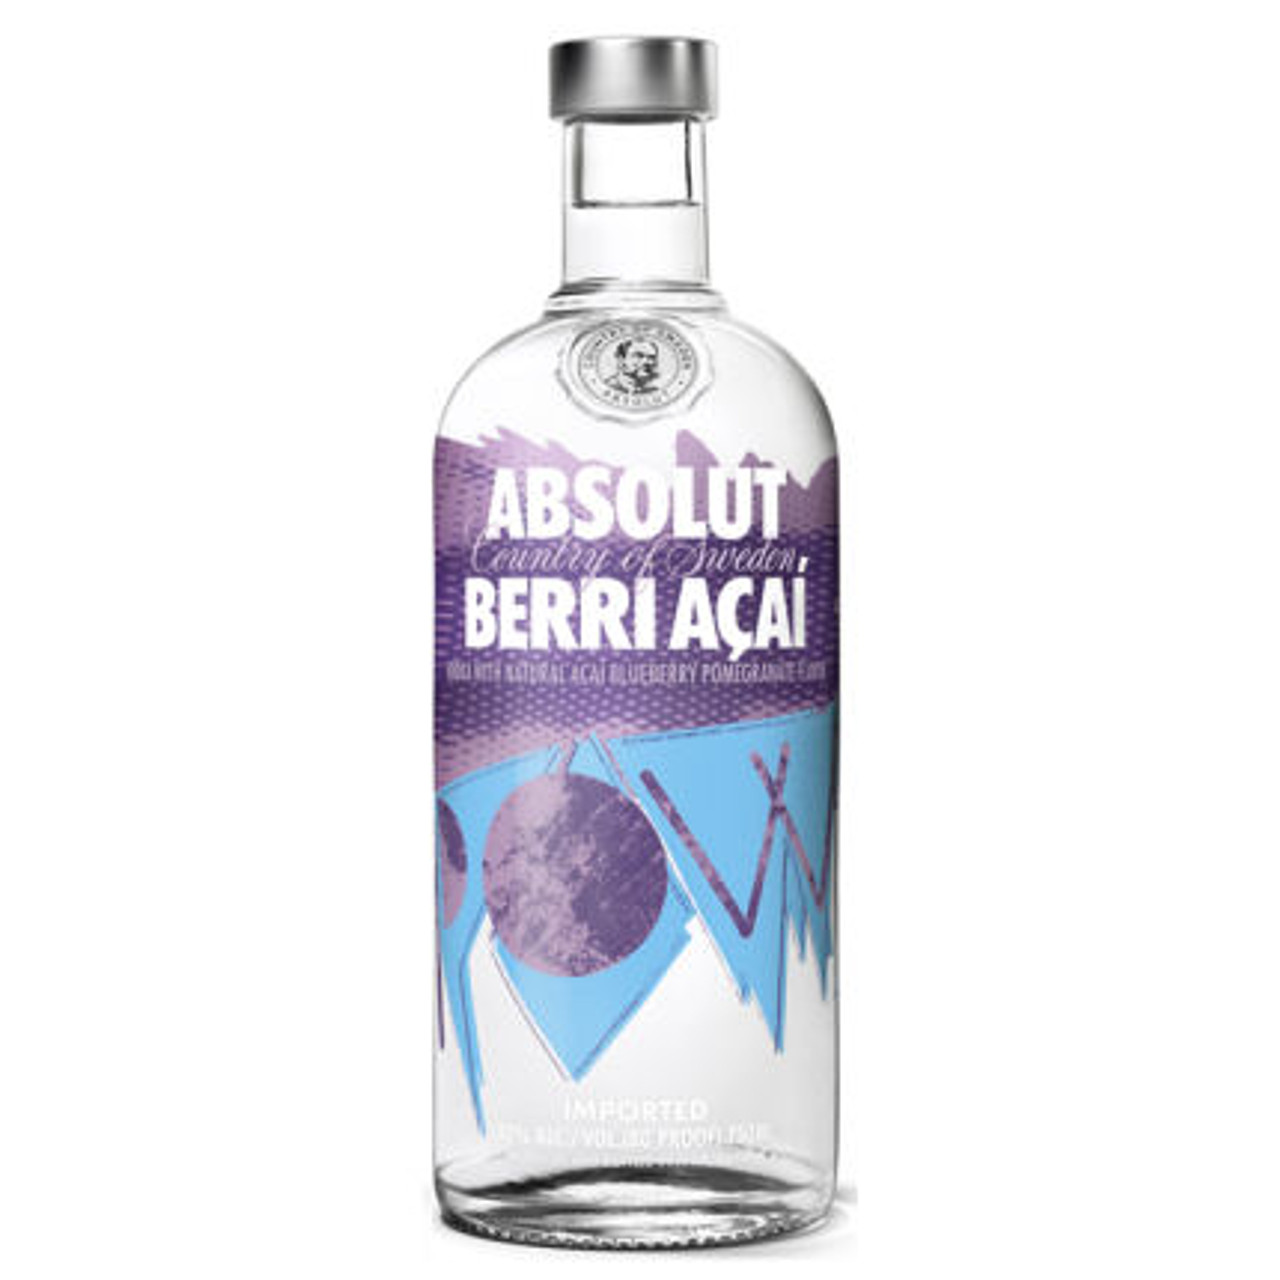 Absolut Berri Acai Swedish Grain Vodka